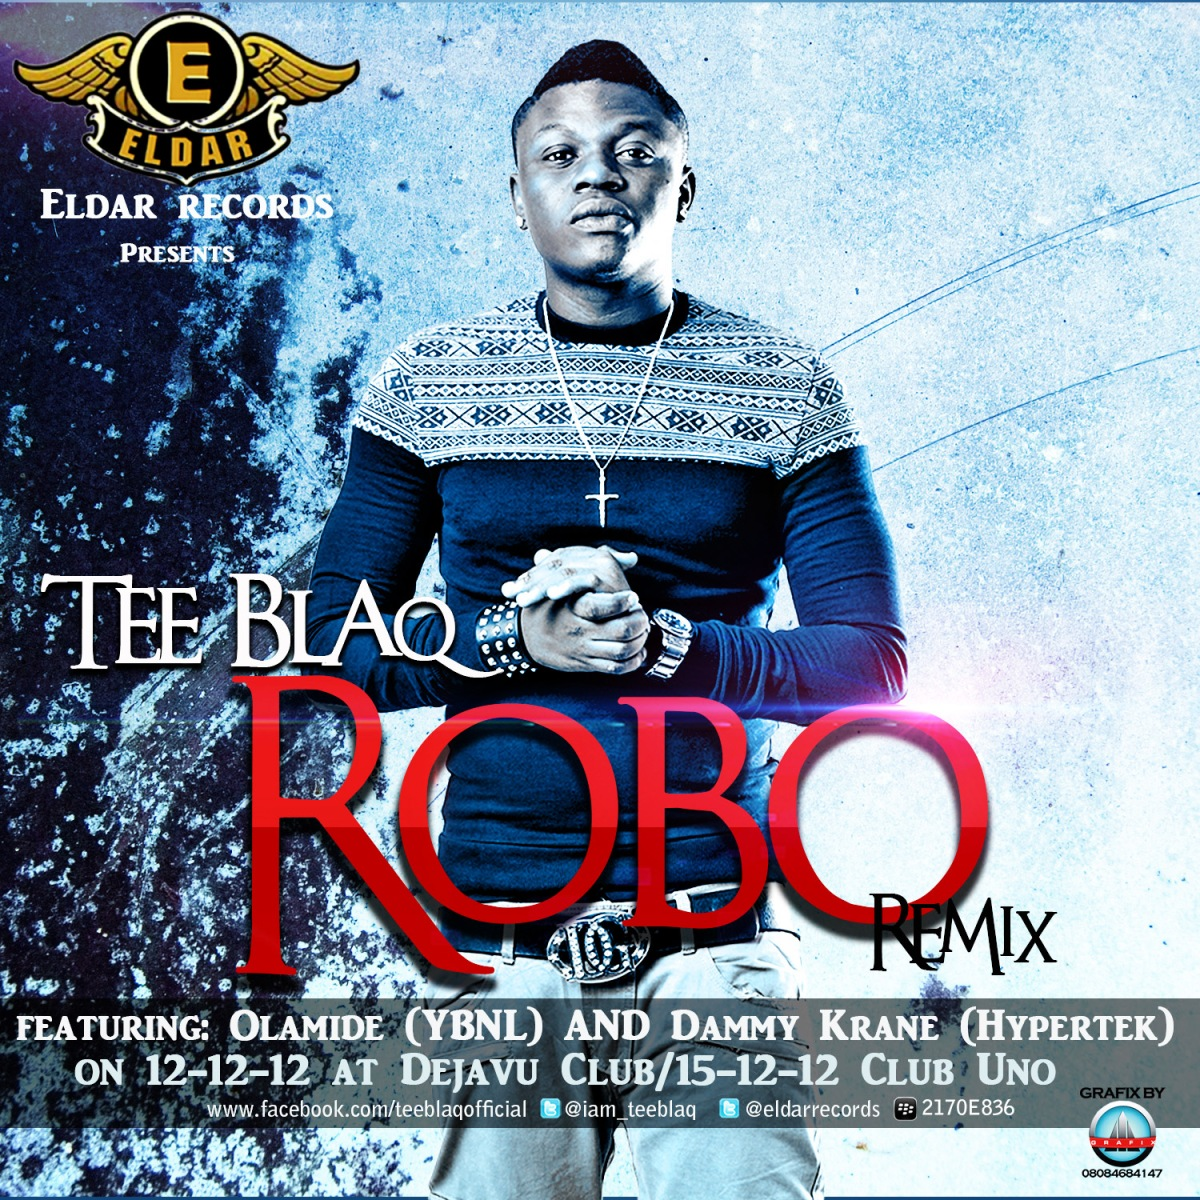 Tee Blaq - ROBO Remix ft. Dammy Krane 'n' Olamide + ROBO STYLE [a PSY cover]